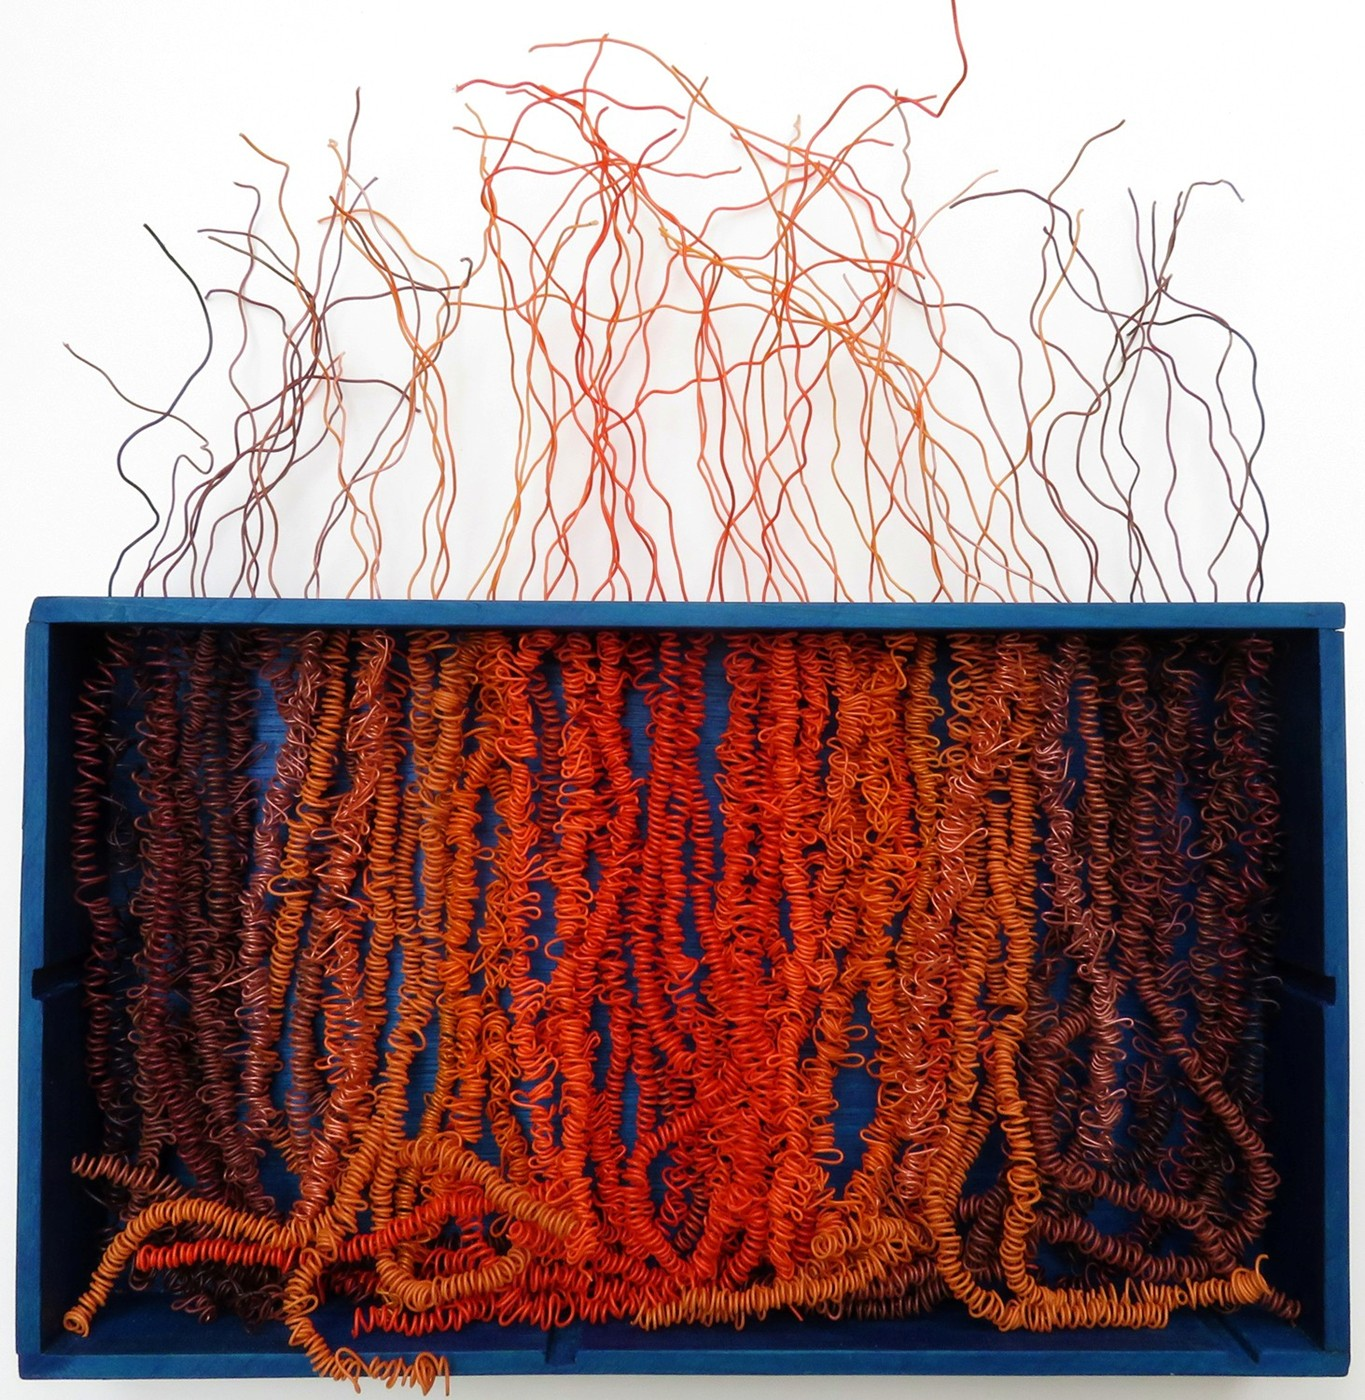 HAIRY TIMES: MAKES THE ROOTS CURL  2018 ~ 14 x 15 x 2 inches ~ Available  Ethernet cable wires, reclaimed wood, acrylic paint